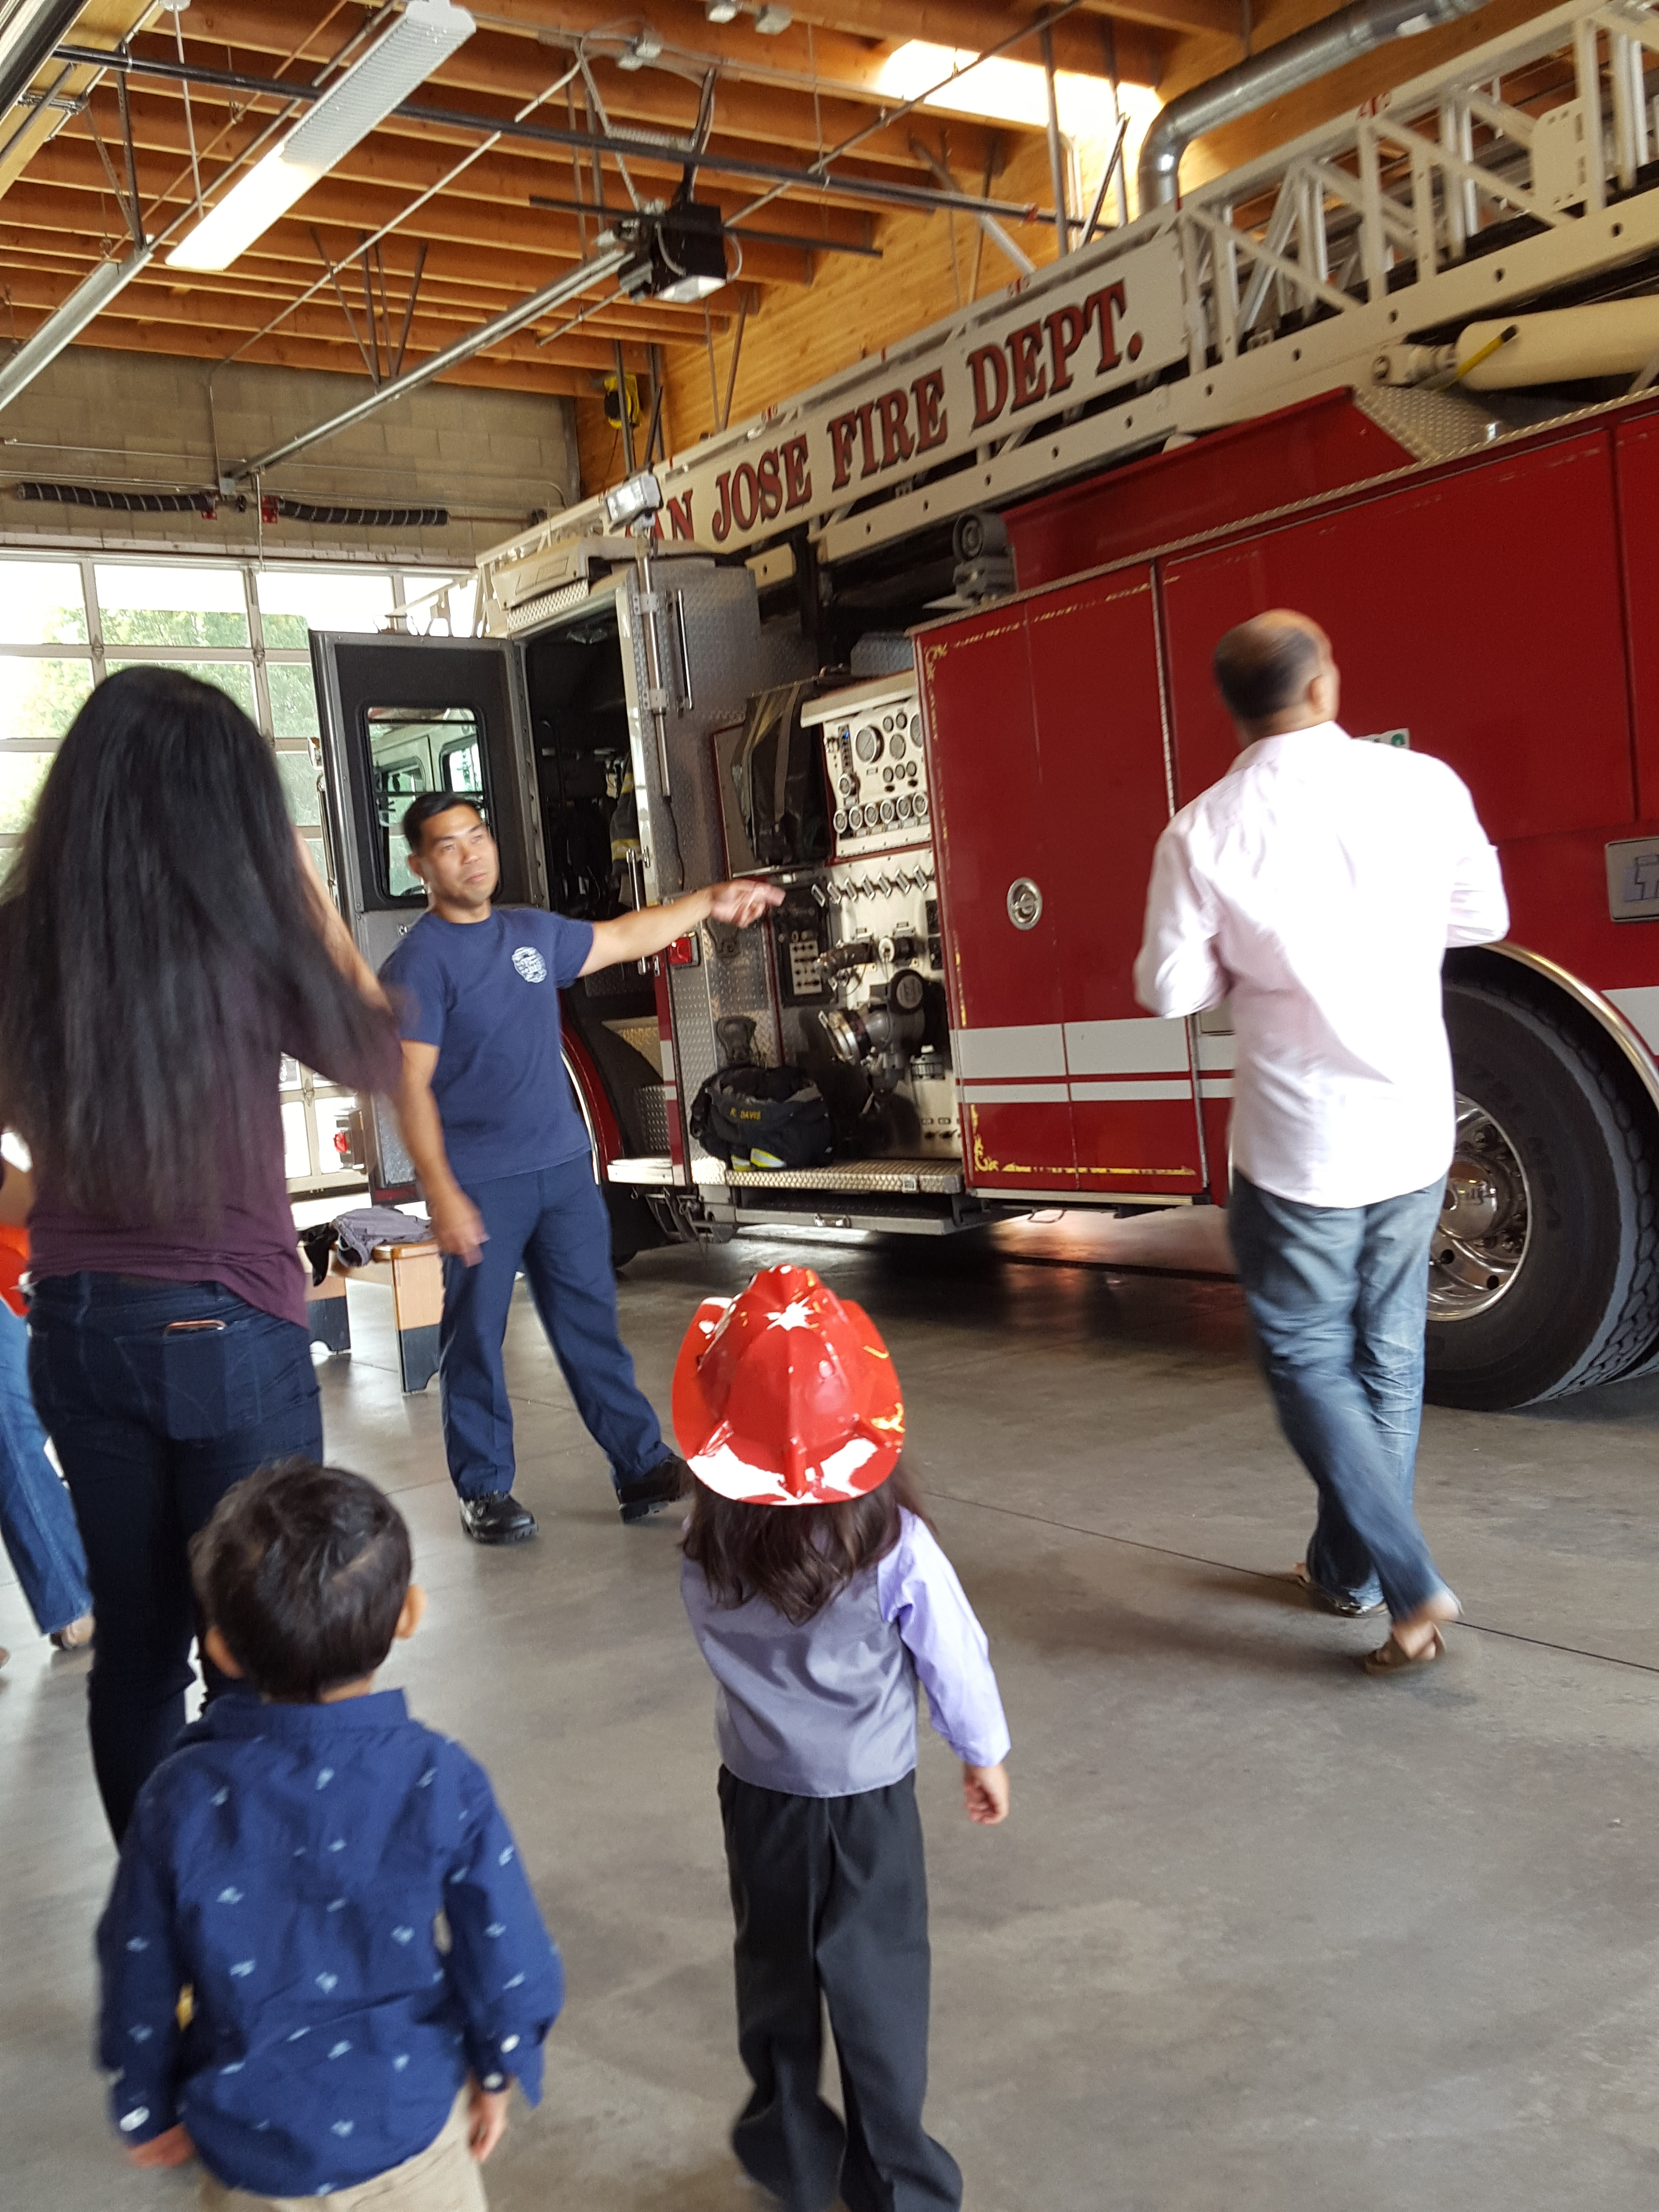 Baby S turns 2 - Visiting the fire station